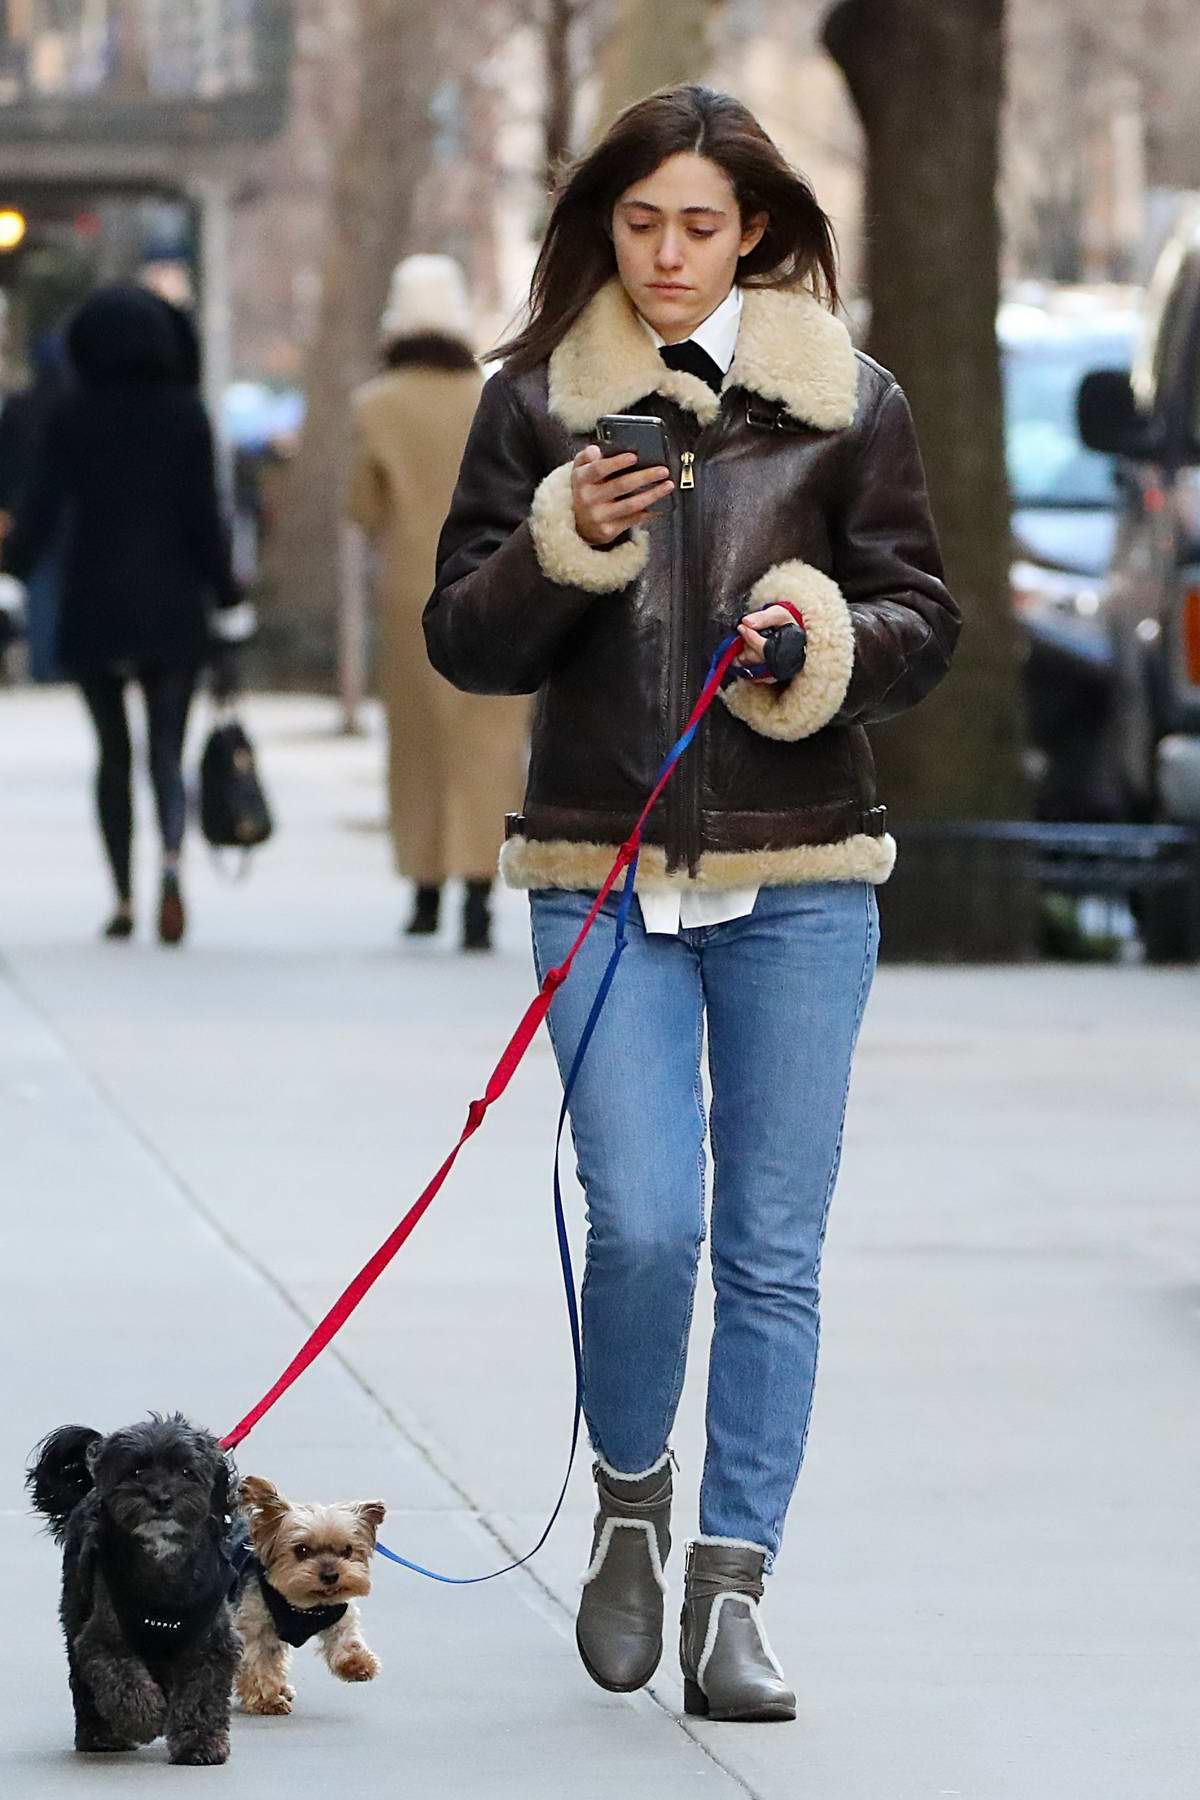 emmy rossum steps out to walk her dogs in new york city ...